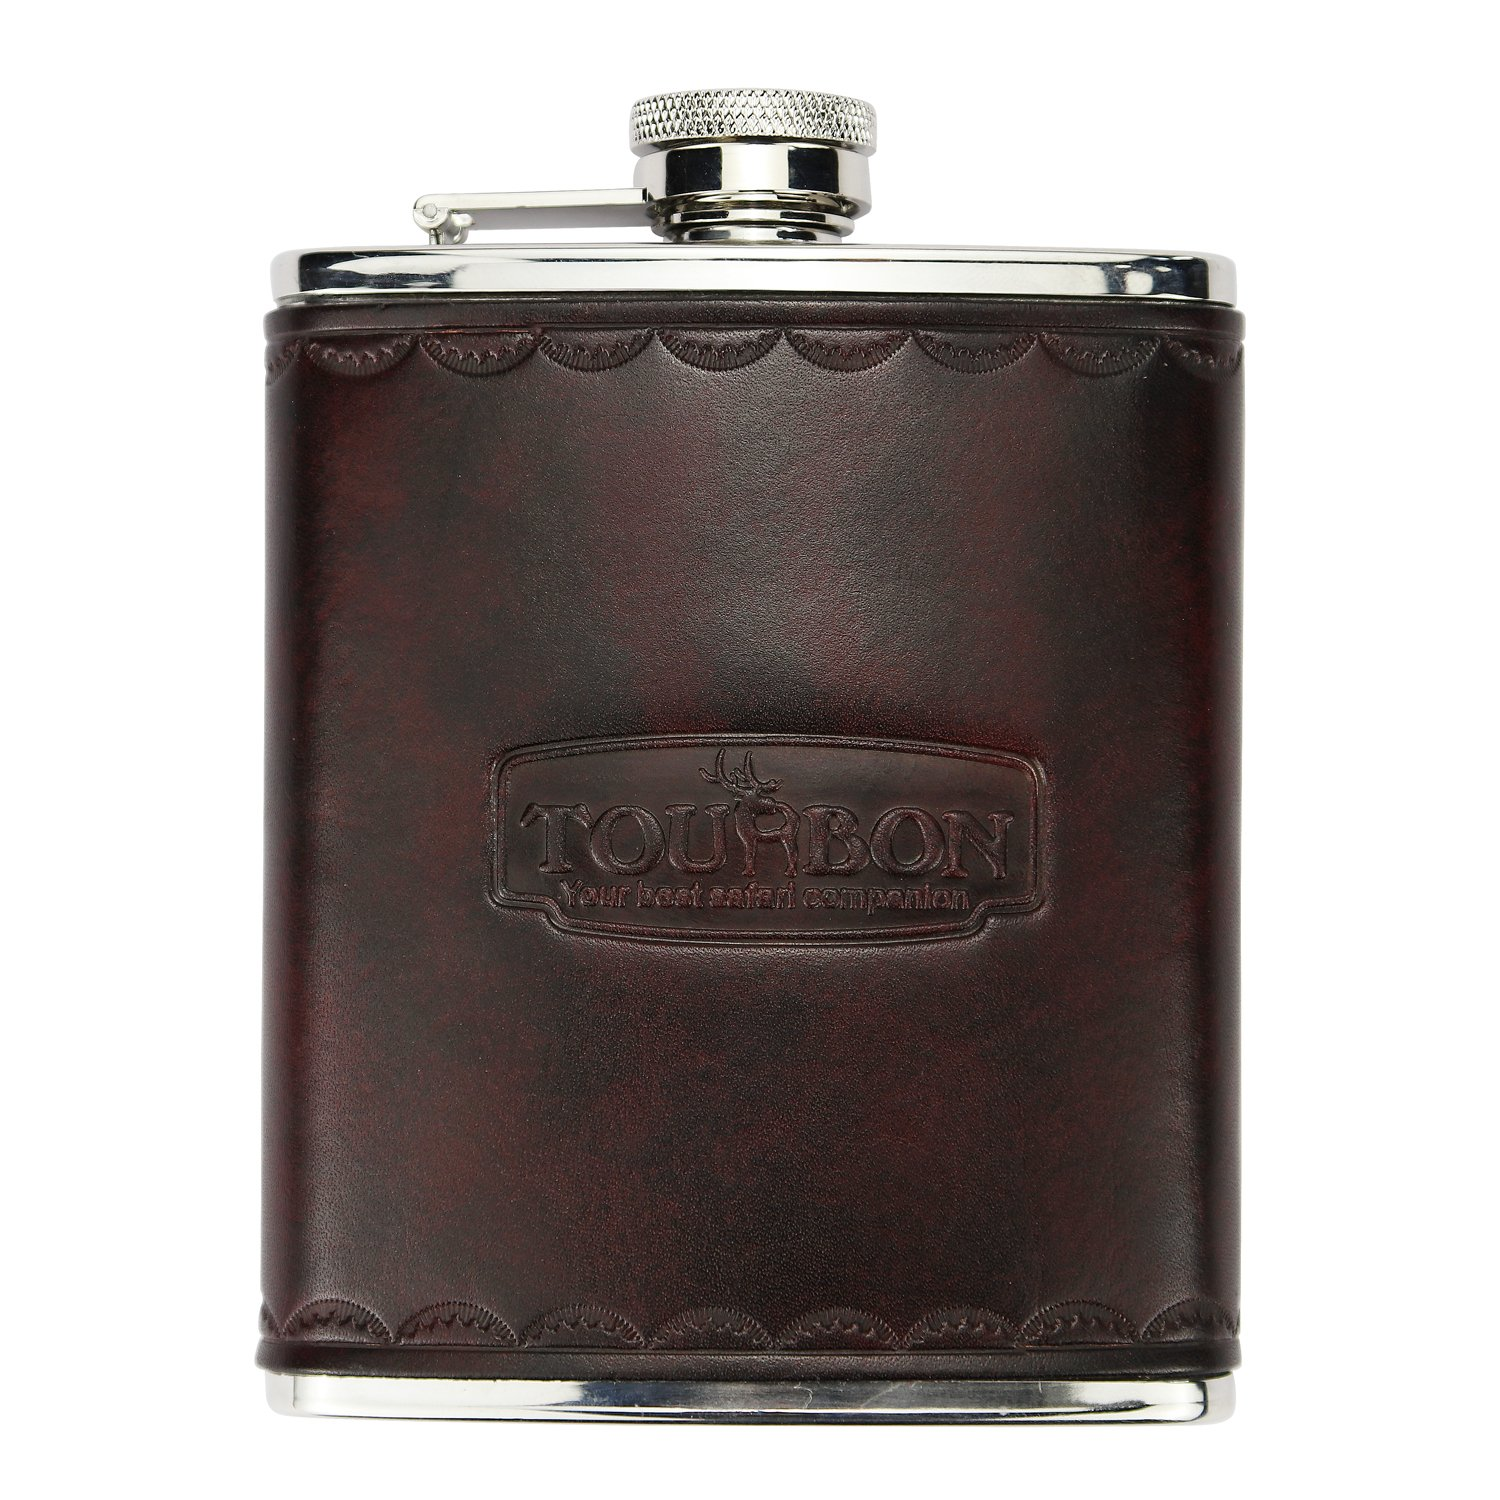 Tourbon Hunting Vintage Leather and Stainless Steel Hip Flask 6OZ